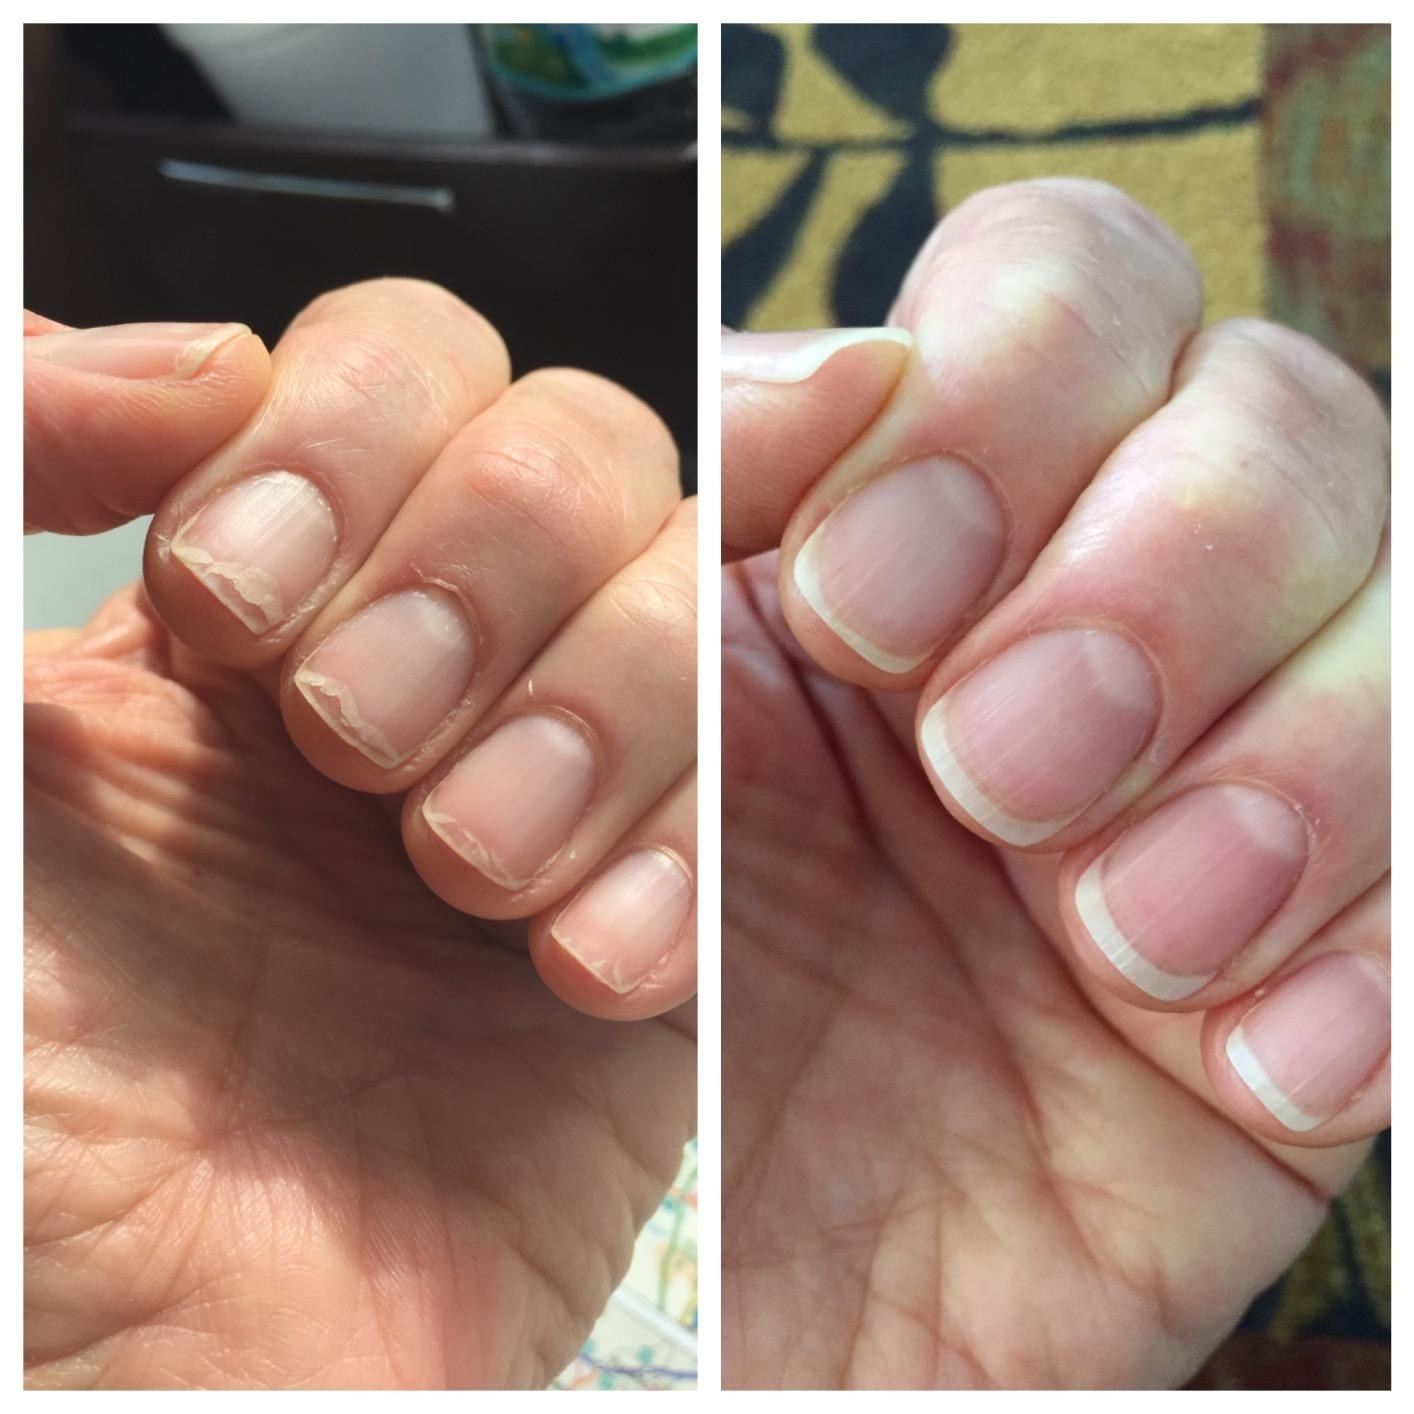 left: reviewer hand with brittle nails right: the same hand with smooth nails